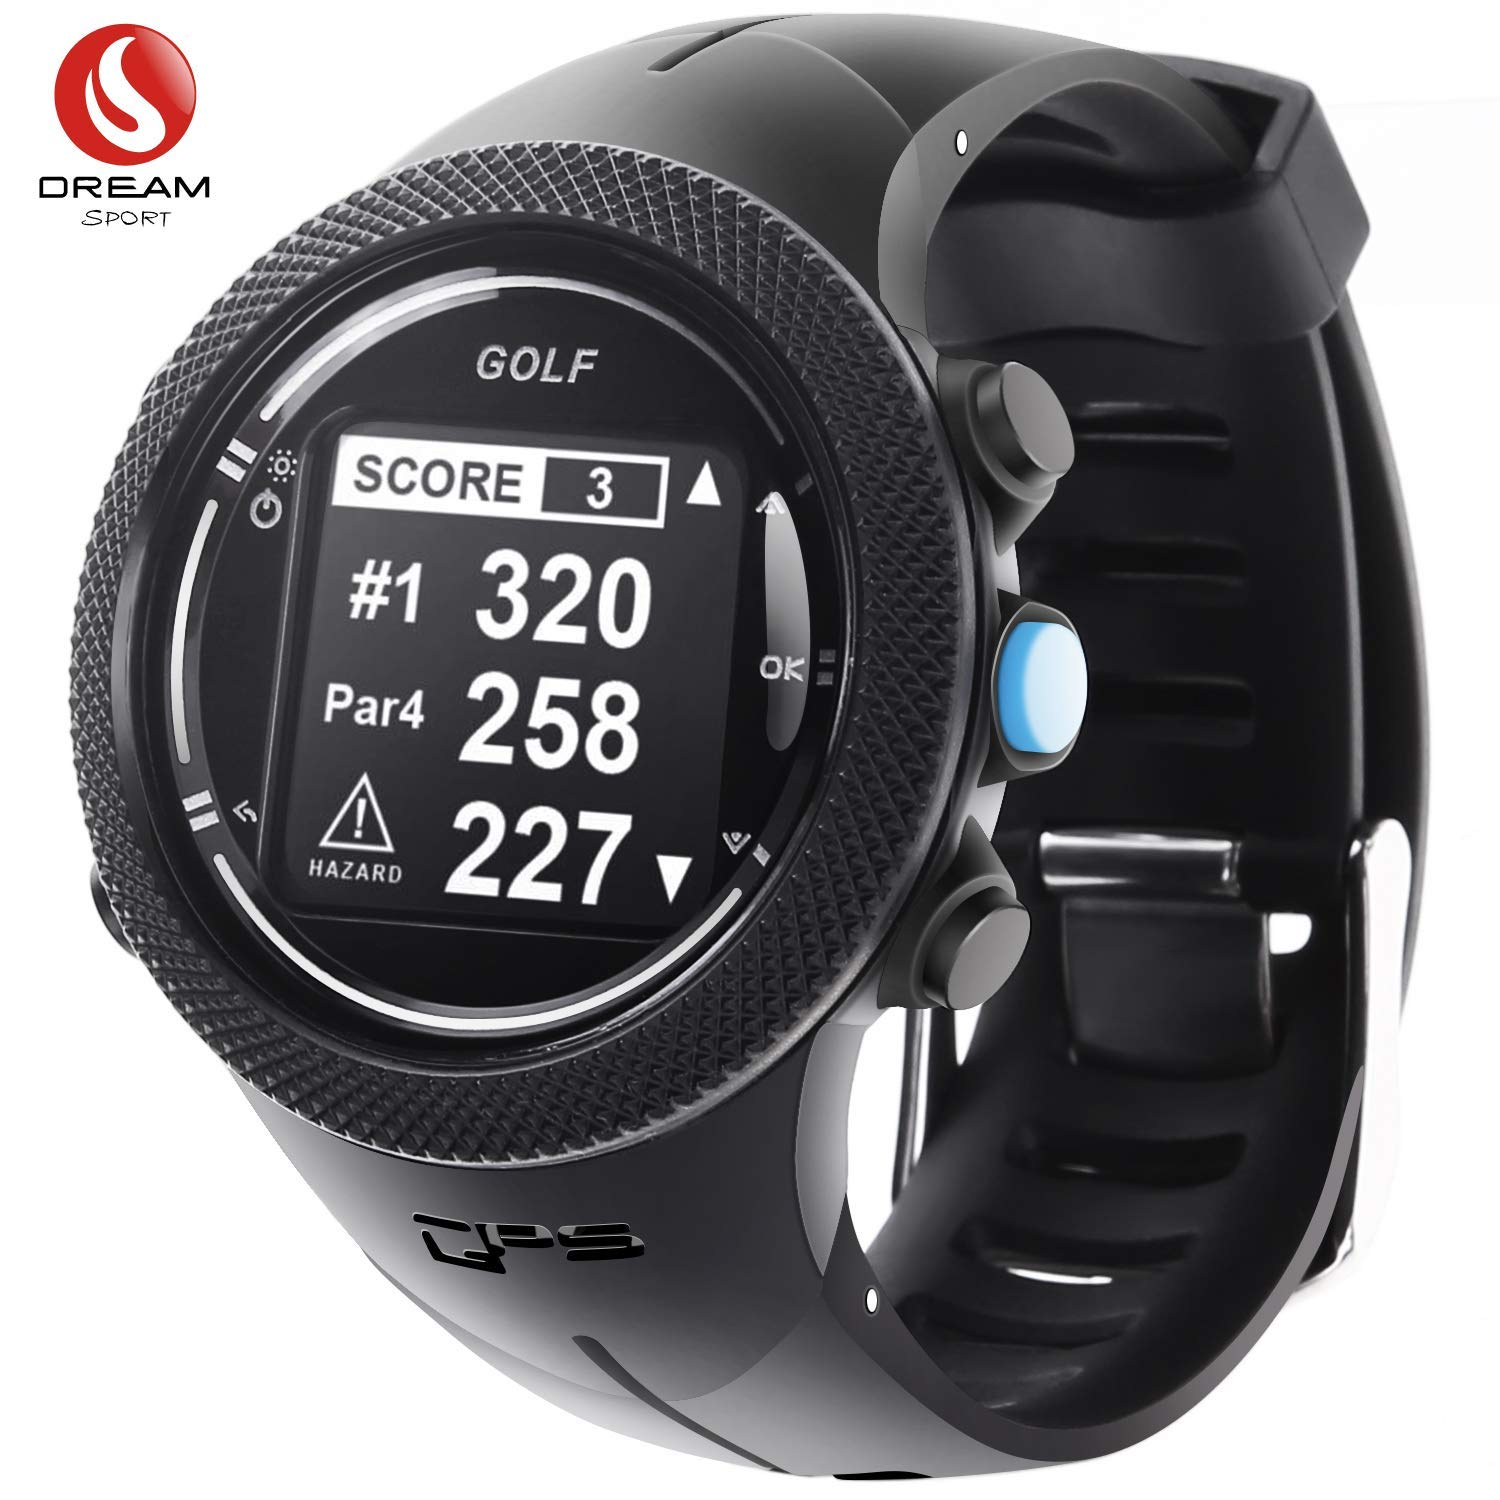 DREAM SPORT GPS Golf Watch Course Rangefinder Measure Shot and Recording Score with 40,000+ Courses Updating and 30Meter Waterproof - Warranty1.5 Year and Free Lifetime Brand Service DGF301 (Black) by DREAM SPORT